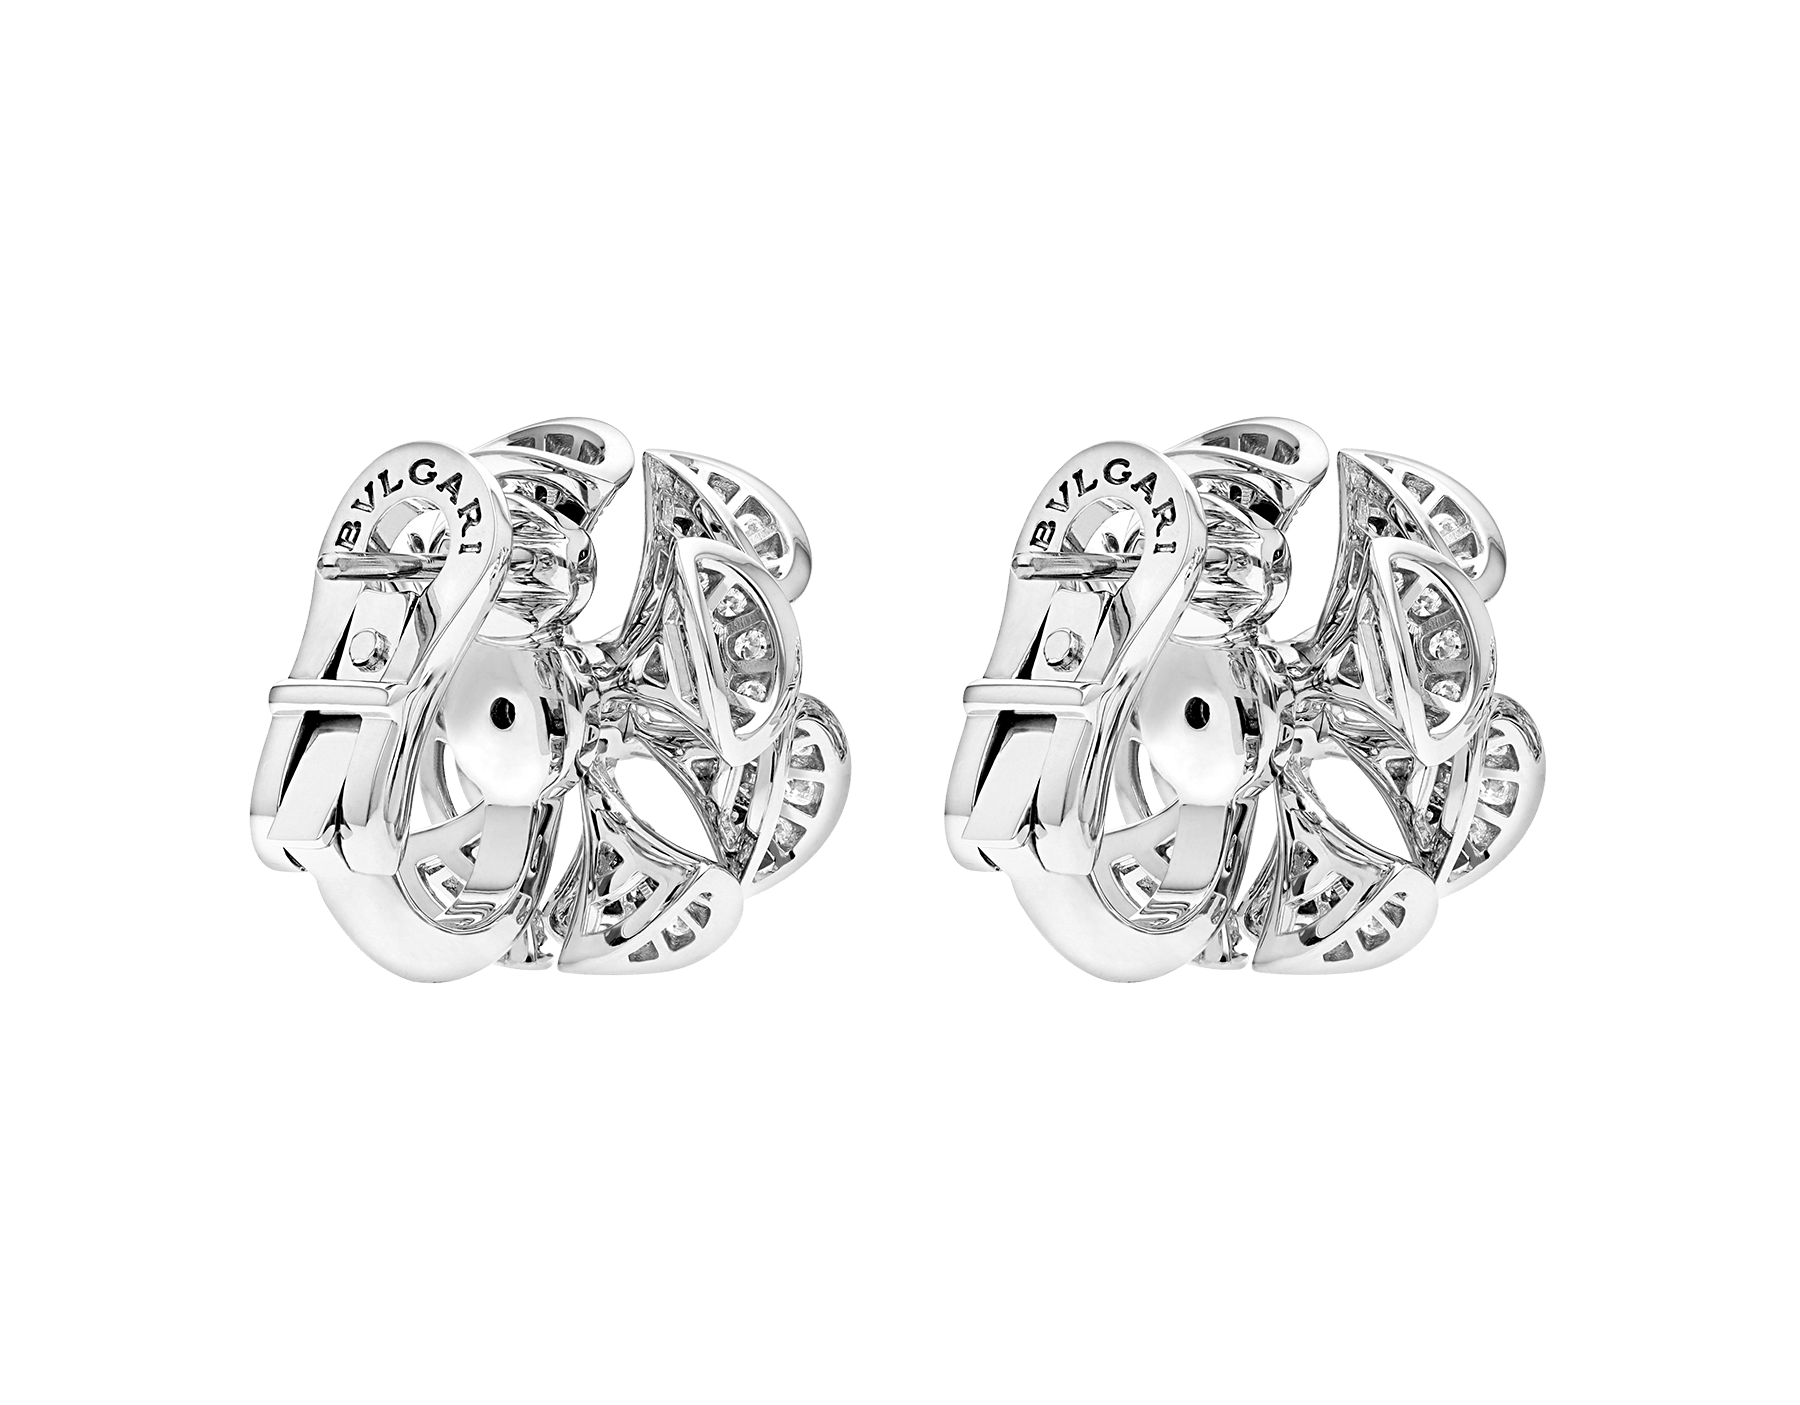 DIVAS' DREAM earrings in 18 kt white gold set with a central diamond and full pavé diamonds. 350785 image 3